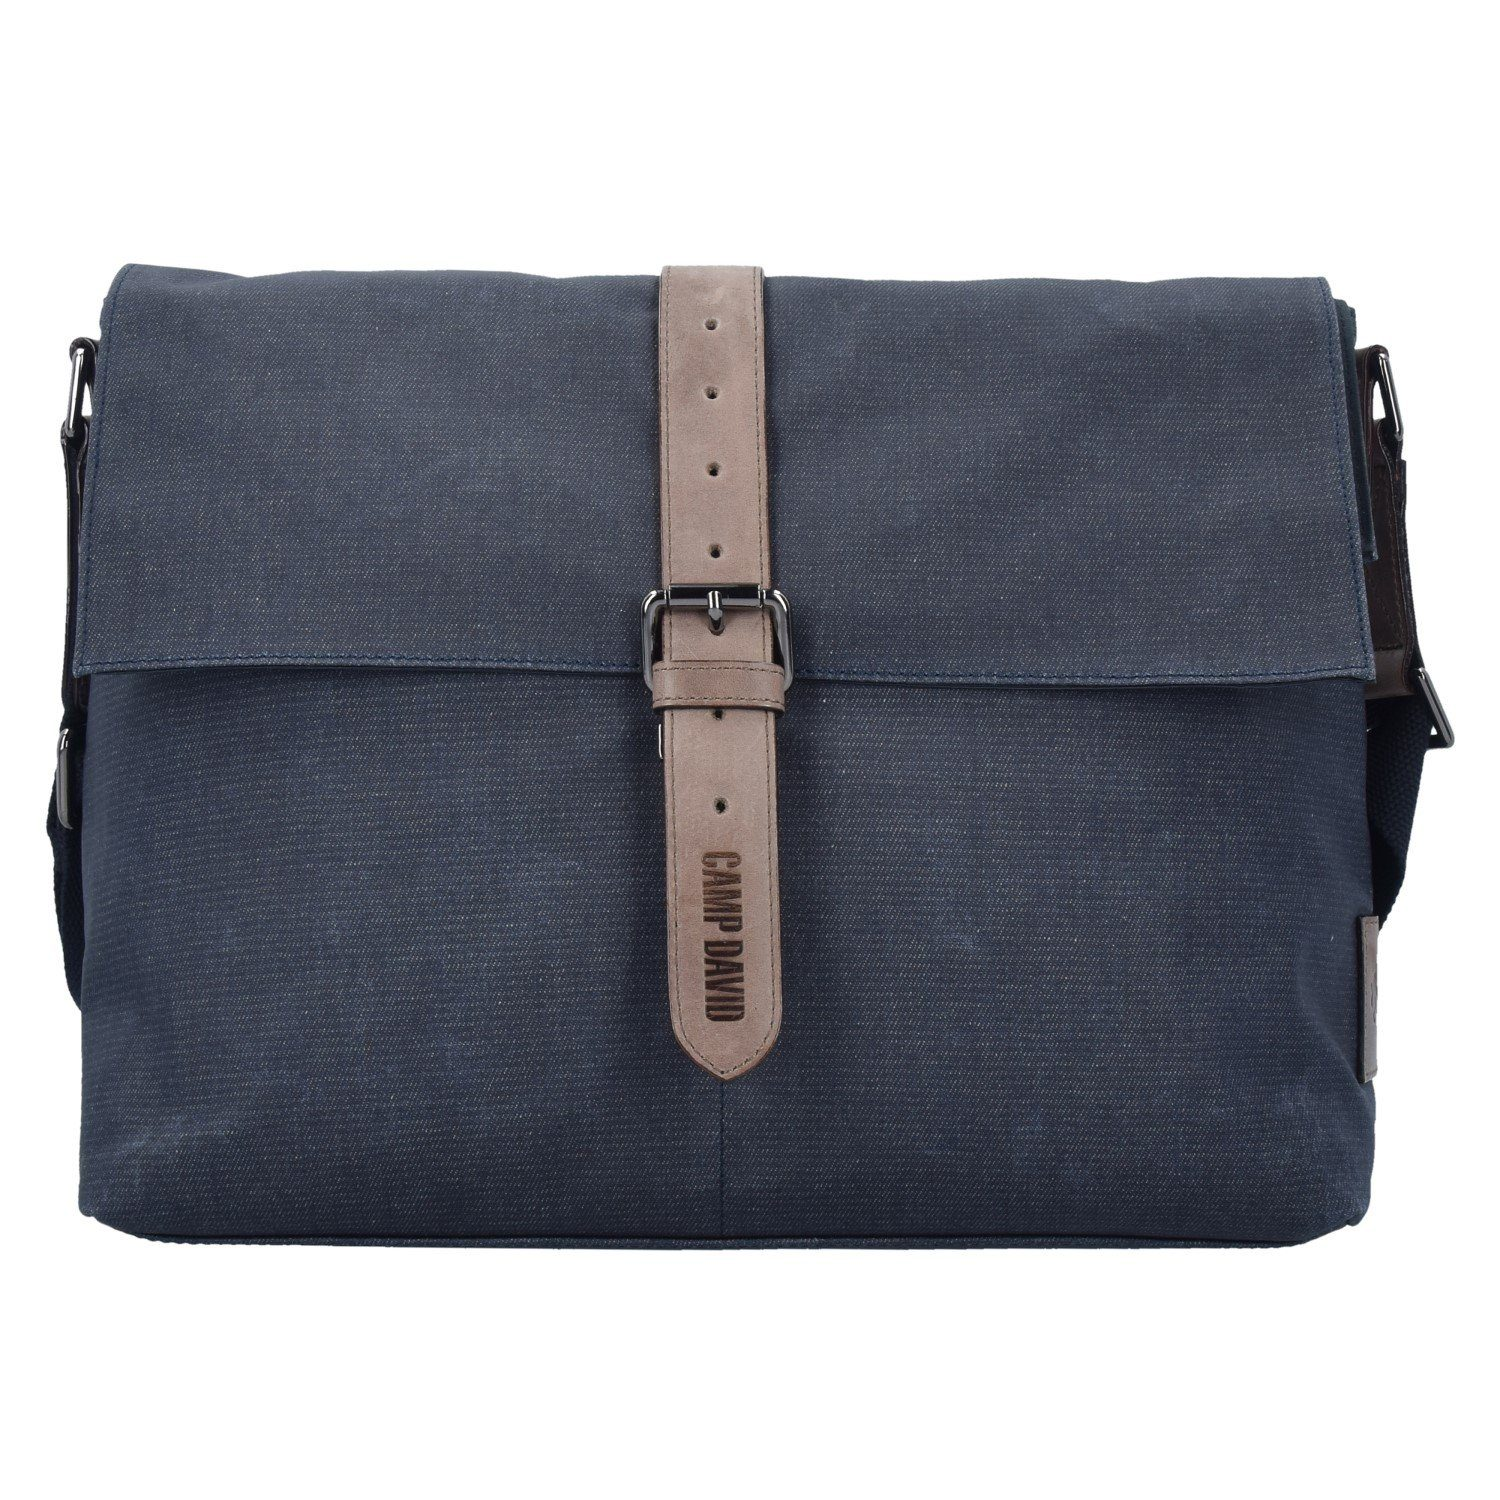 CAMP DAVID Newark Messenger 37 cm Laptopfach